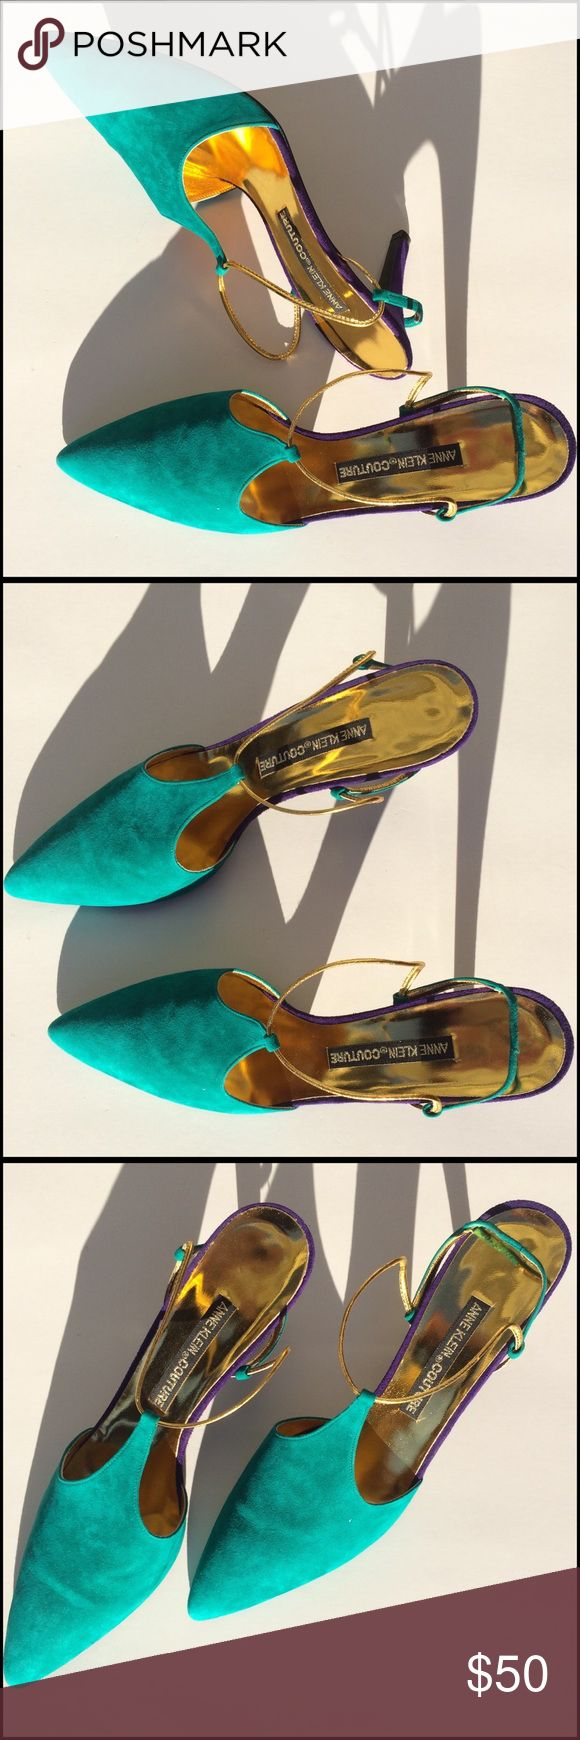 Anne Klein Couture Heels Stunning slingback, teal and purple suede withhold strap and instep, new, never worn , made in Italy, size 8.5 but run small fit like an 8. (C1 Anne Klein Shoes Heels